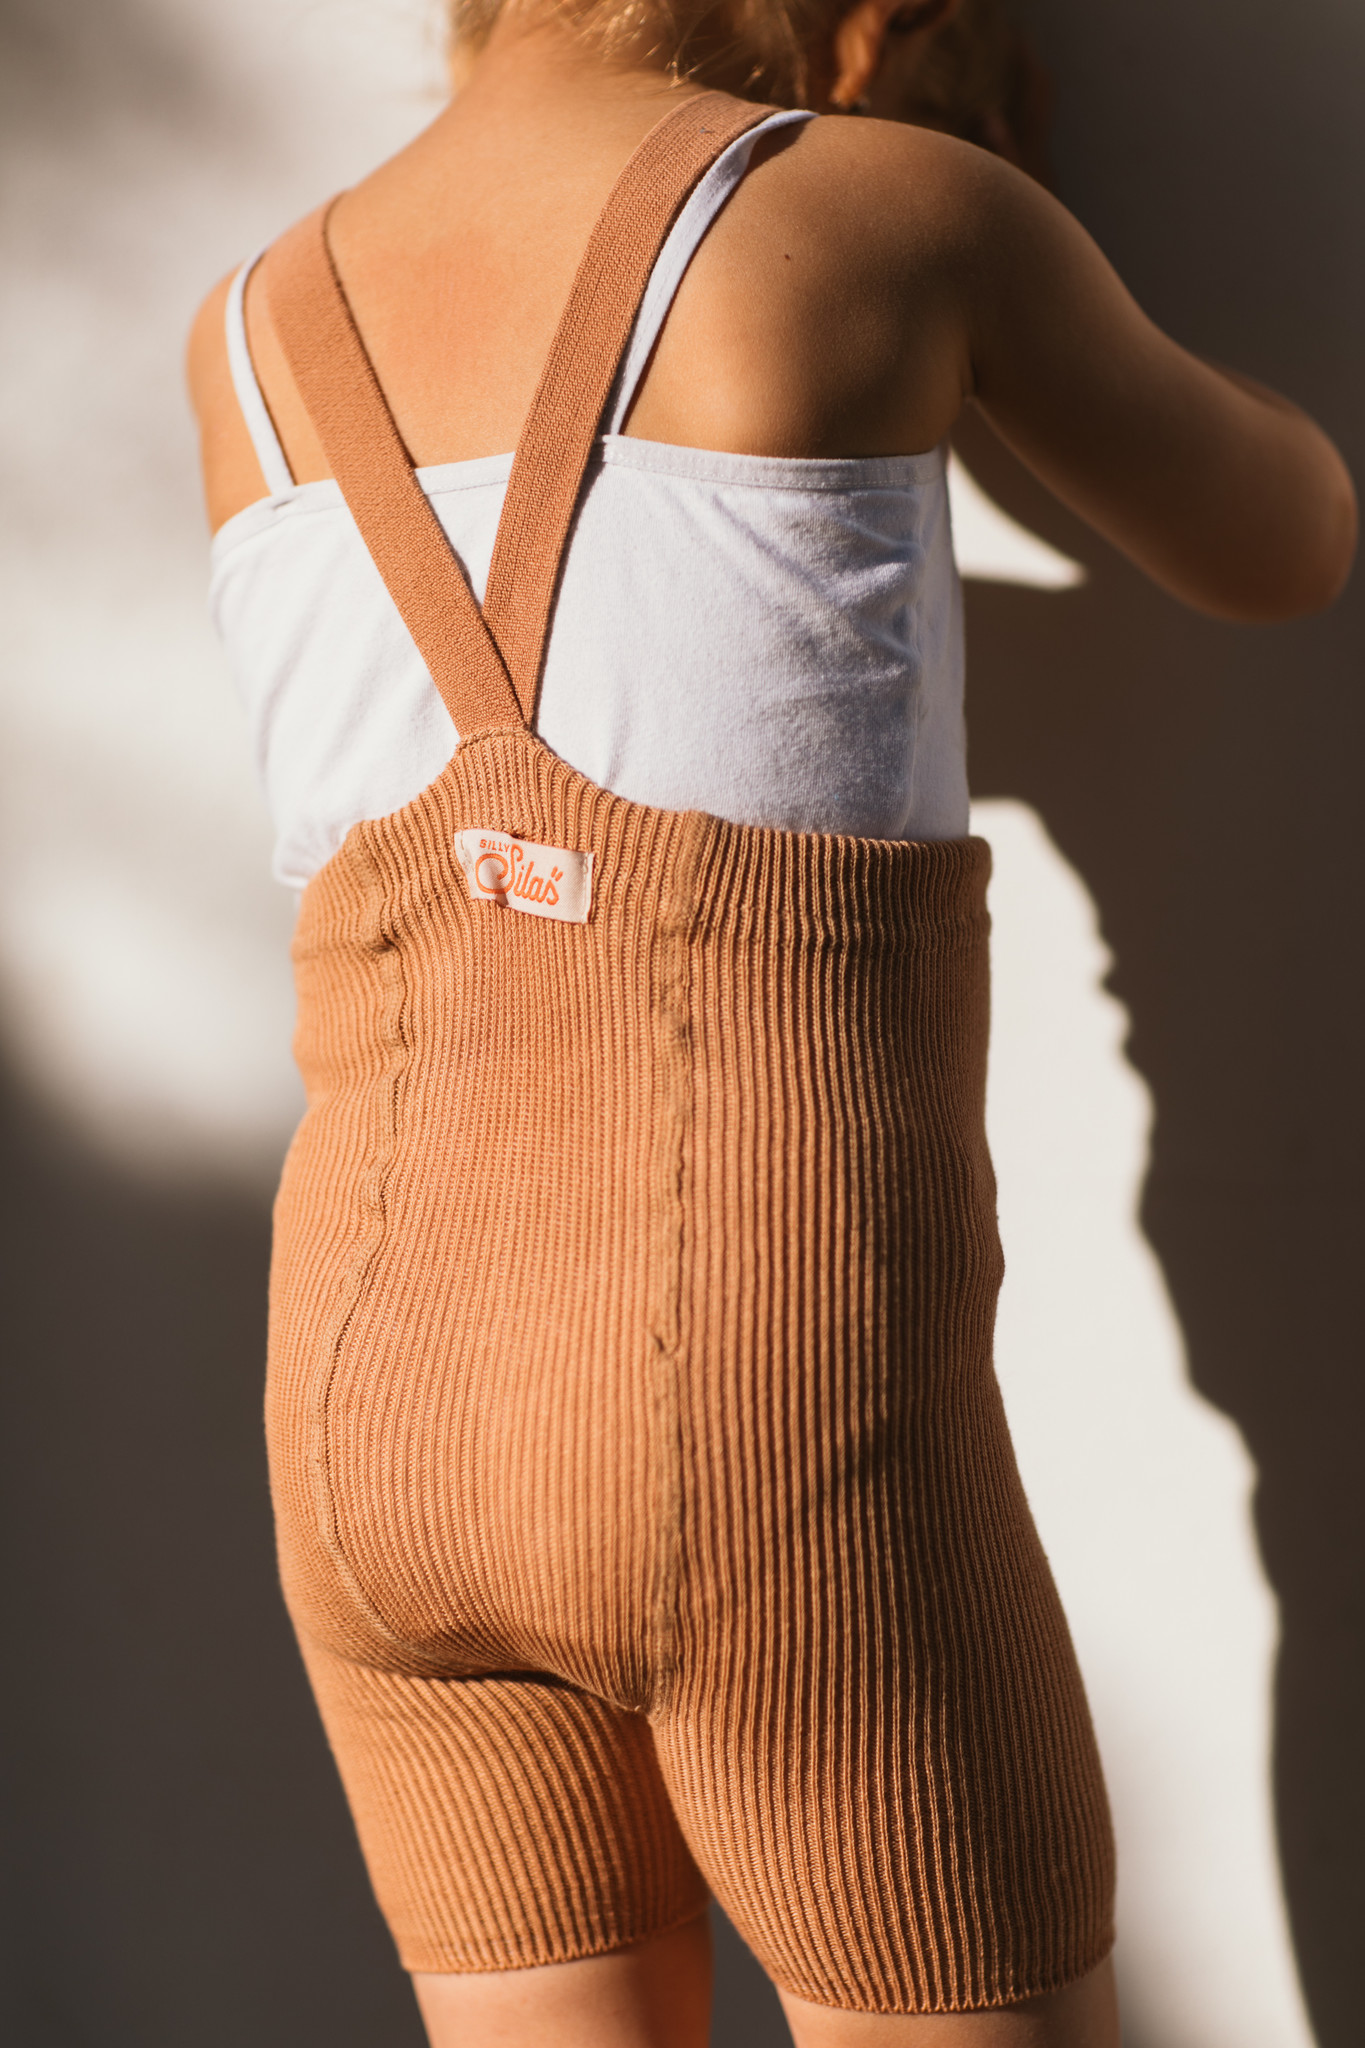 Silly Silas - korte maillot/ shorts met bretels - 100% katoen - salmon brown -  0 tm 3 jaar